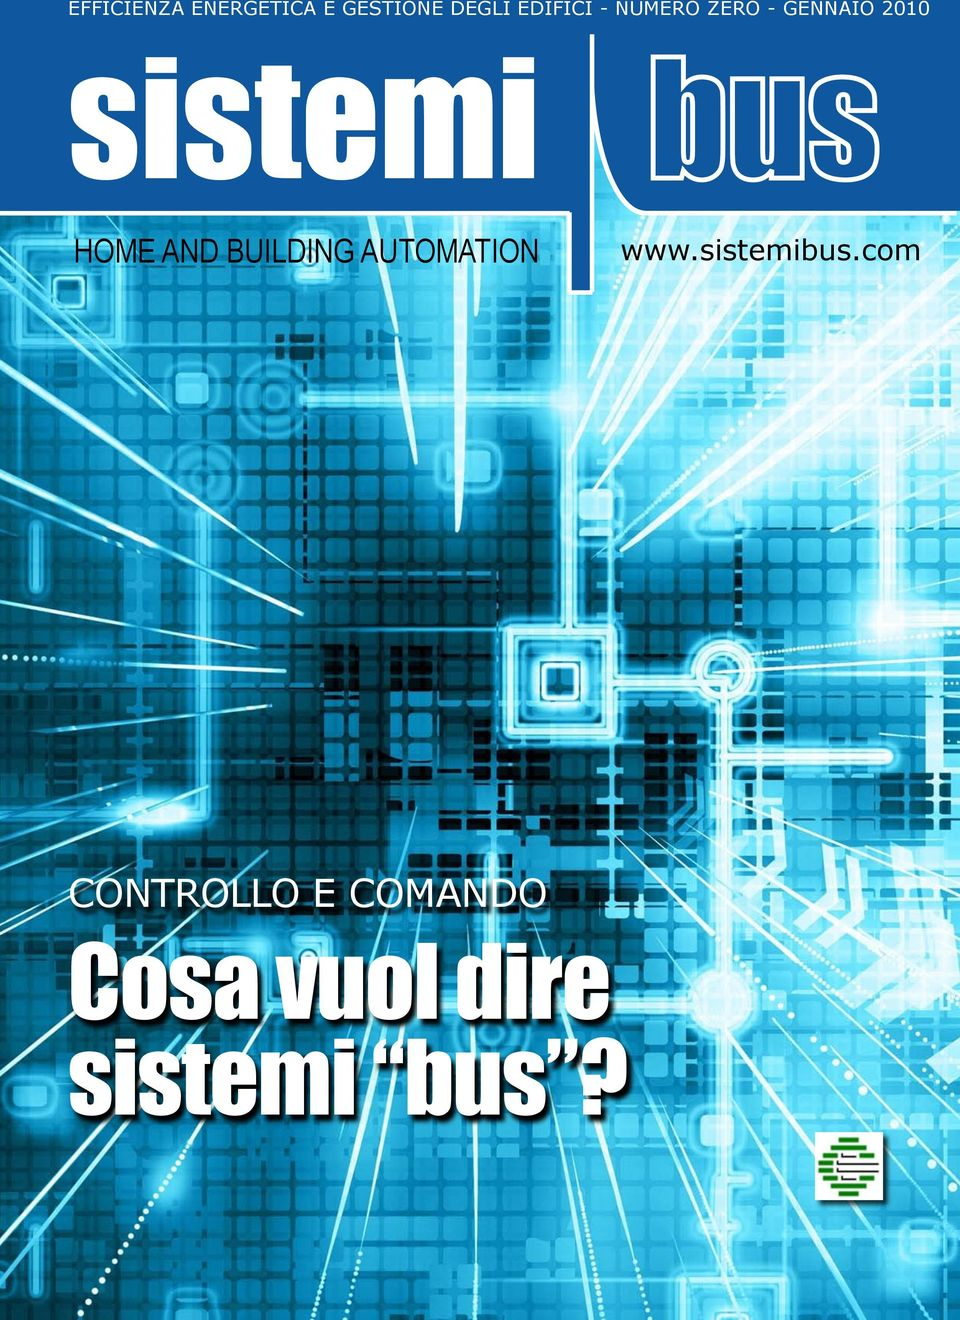 HOME AND BUILDING AUTOMATION www.sistemibus.